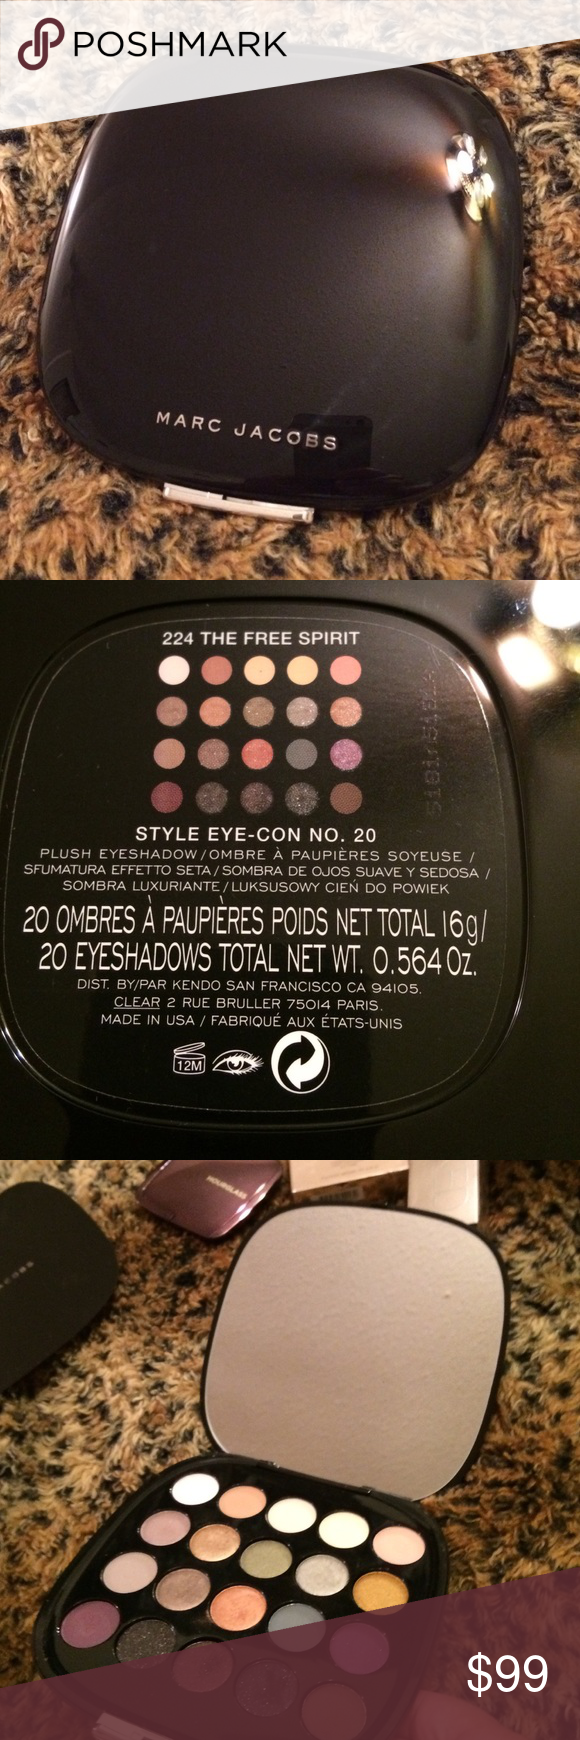 MARC JACOBS ~ PLUSH EYESHADOW ~ STYLE EYE CON #20 MARC JACOBS ~ PLUSH EYESHADOW ~ STYLE EYE CON #20 ~ 224 THE FREE SPIRIT ~  SOLD OUT EVERYWHERE ~ 20 COLORS OF WHICH 7 ARE LIGHTLY SWATCHED ~ % AUTHENTIC ~ BUNDLE & SAVE 10% Marc Jacobs Makeup Eyeshadow